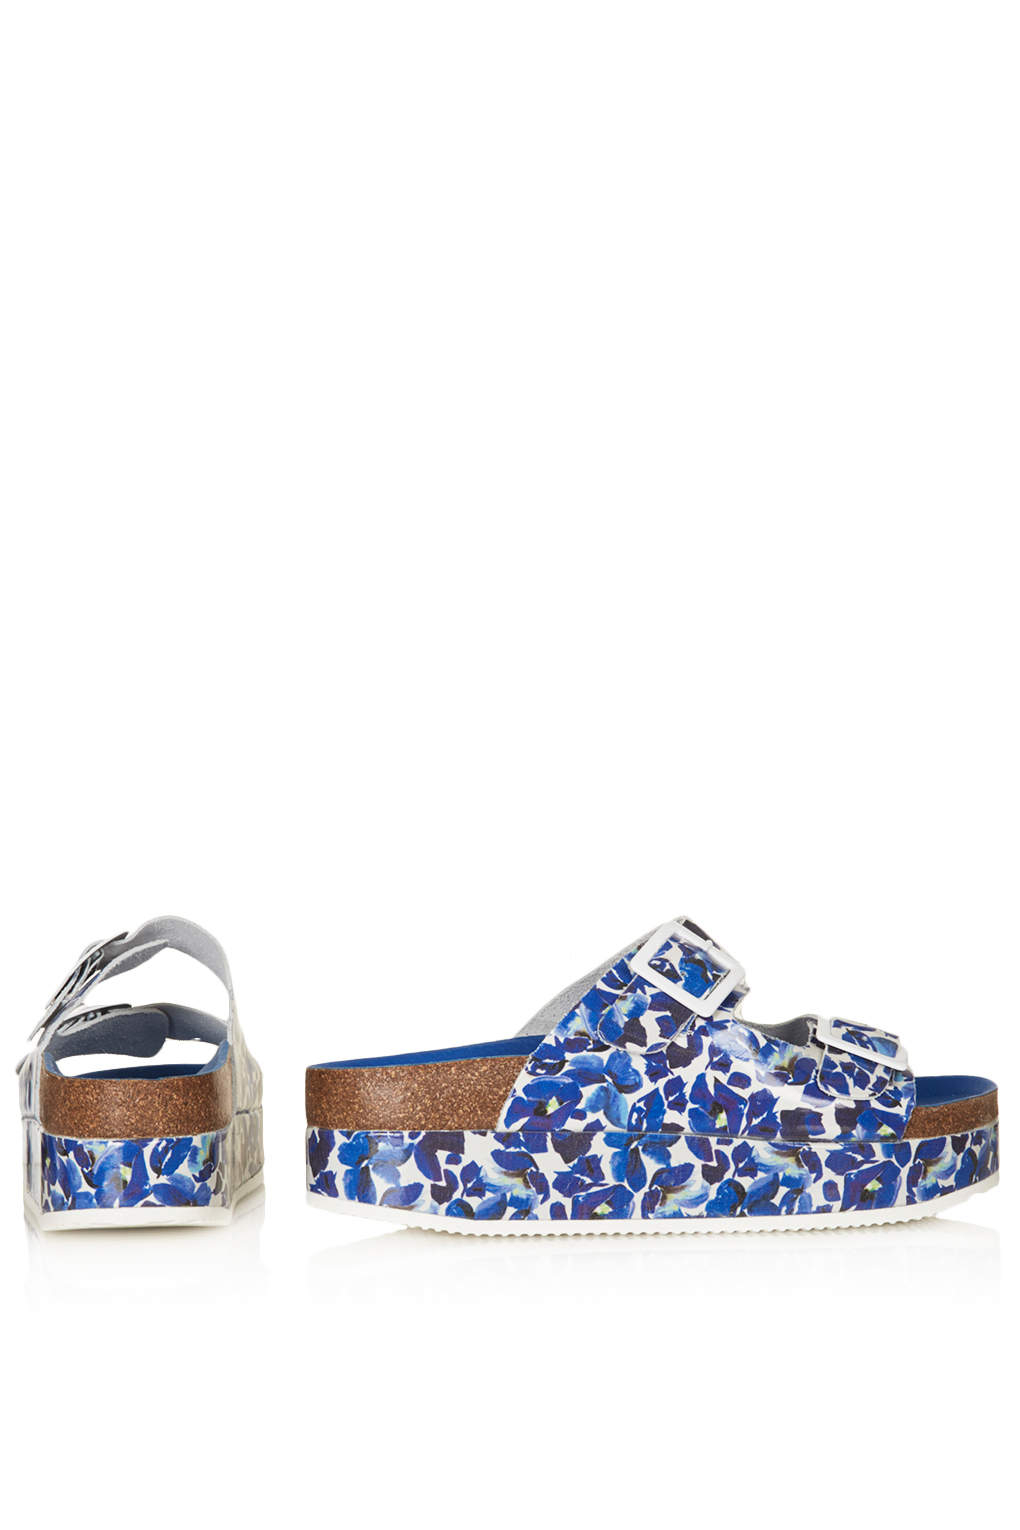 fc61fe9b608b Lyst - TOPSHOP Fang Double Buckle Flatform Sandals in Blue